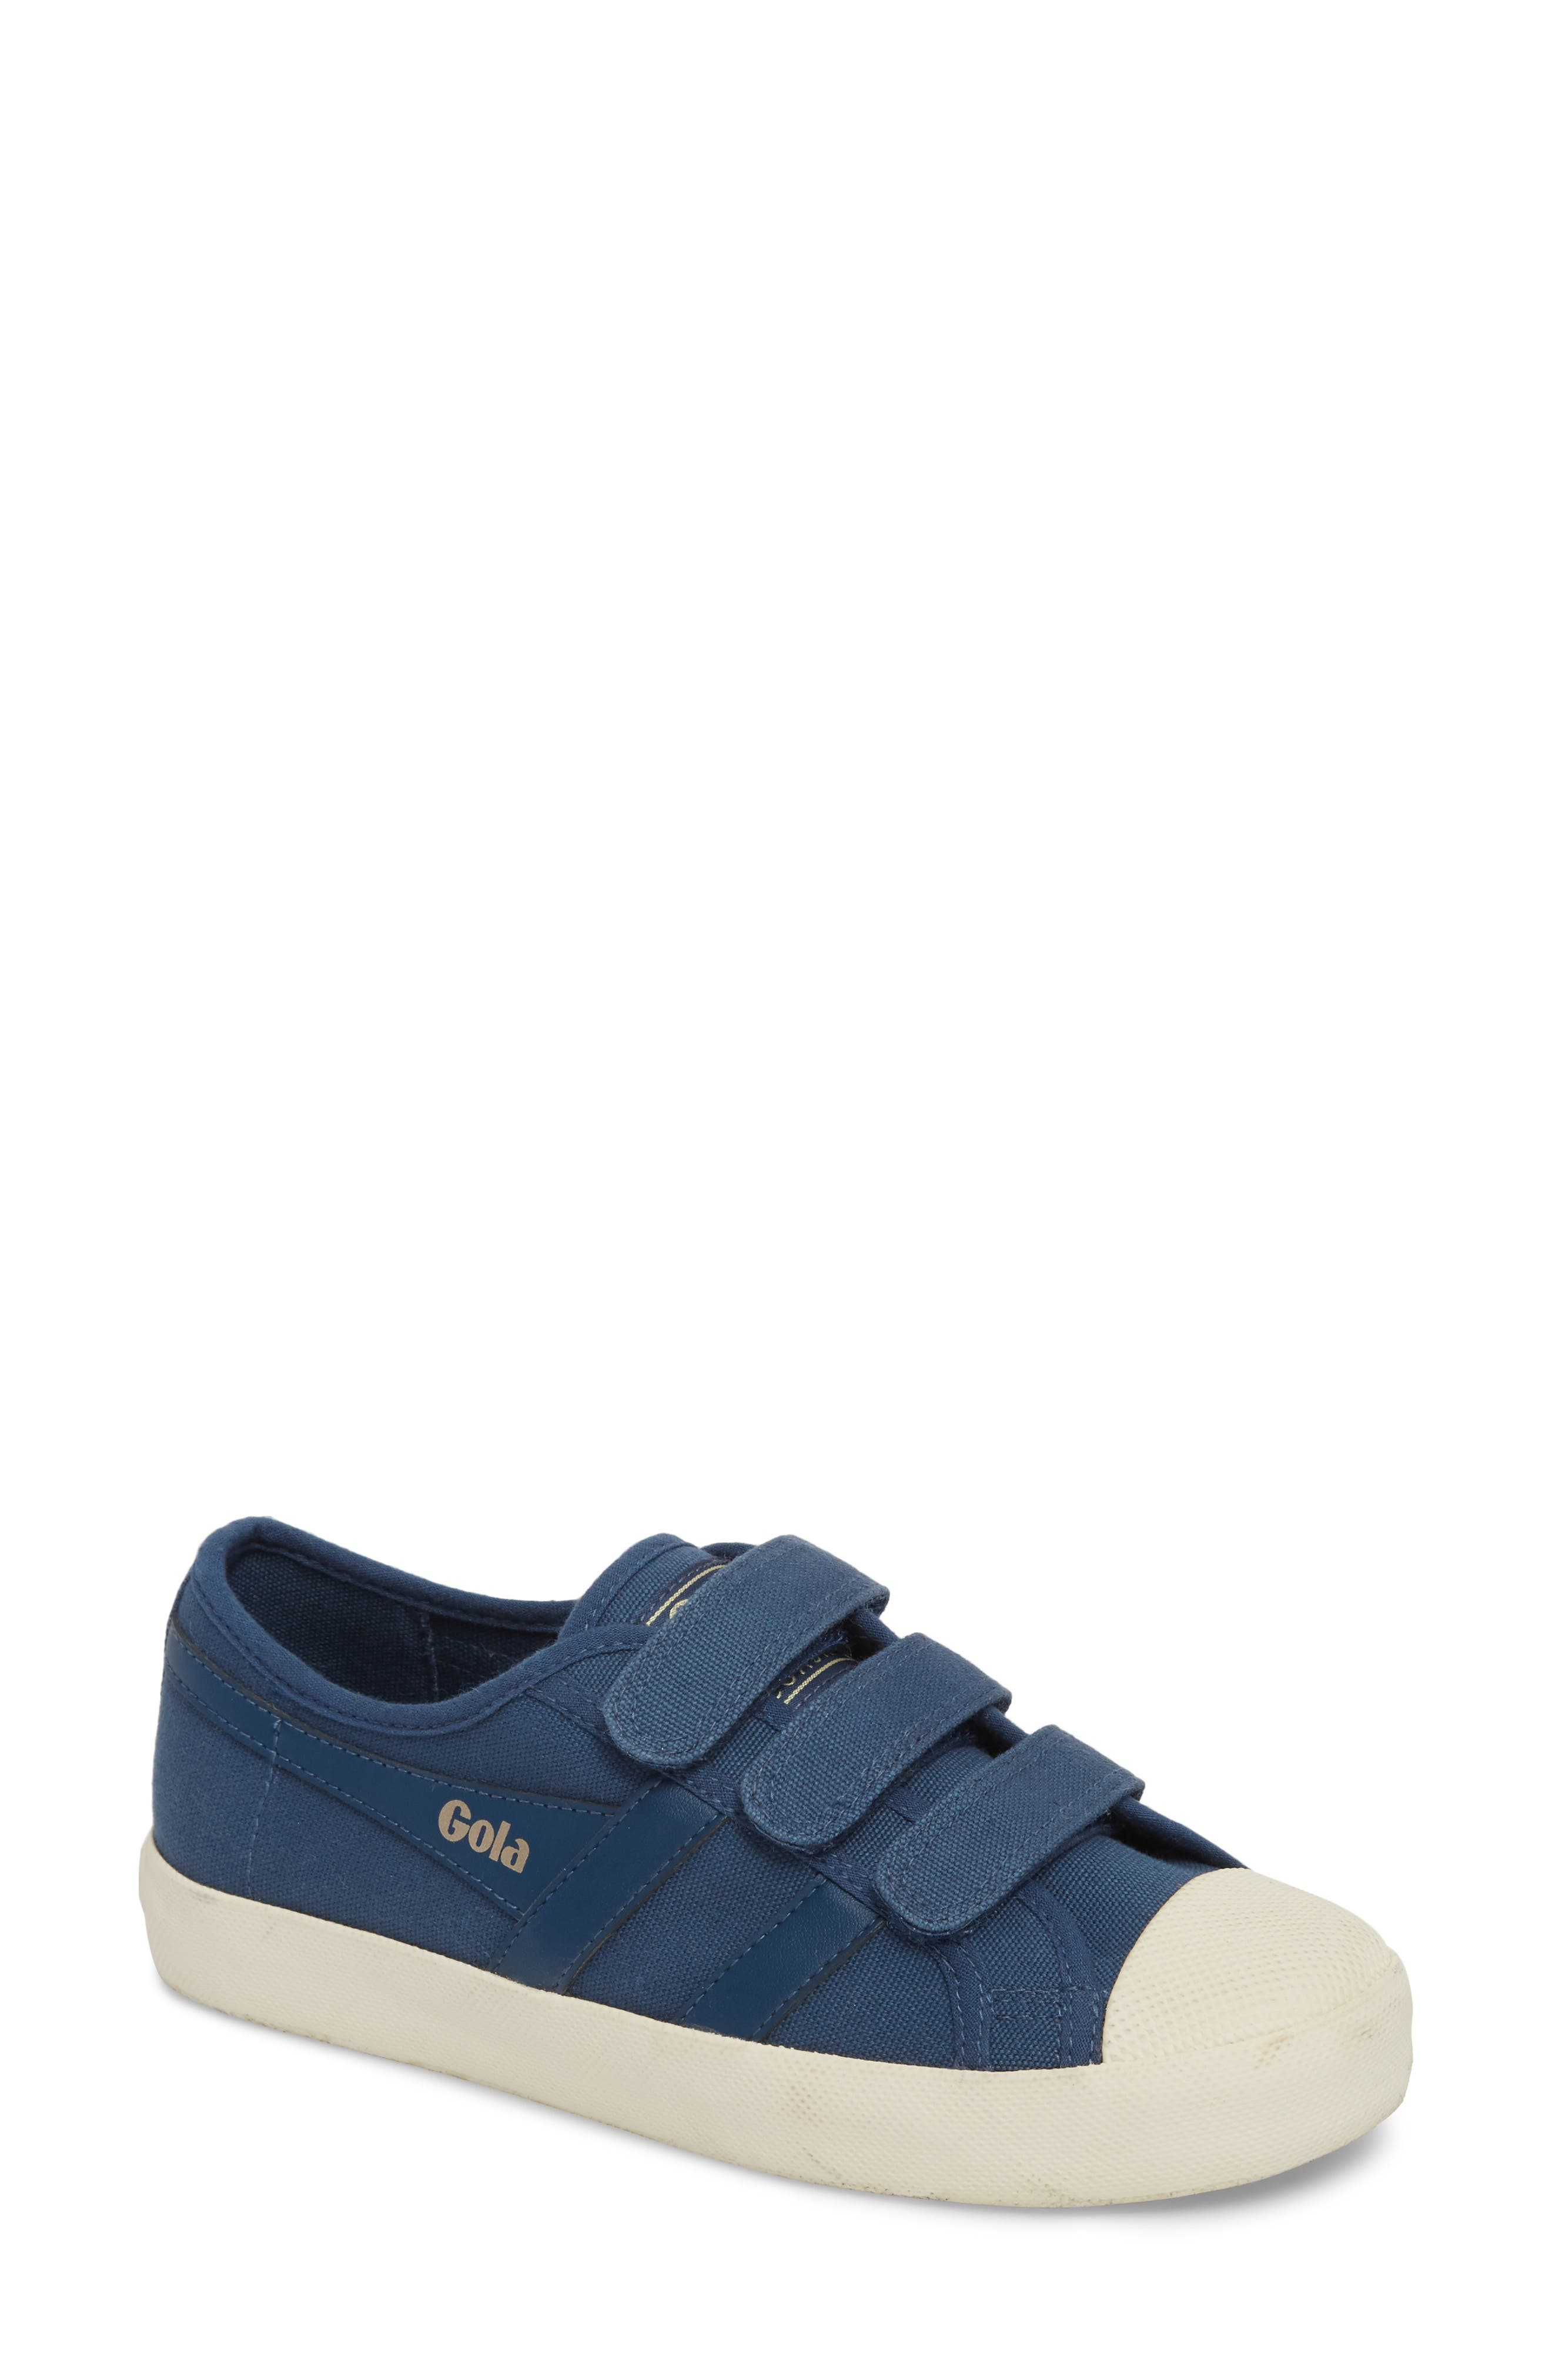 Coaster Low Top Sneaker,                             Main thumbnail 1, color,                             Baltic/ Off White